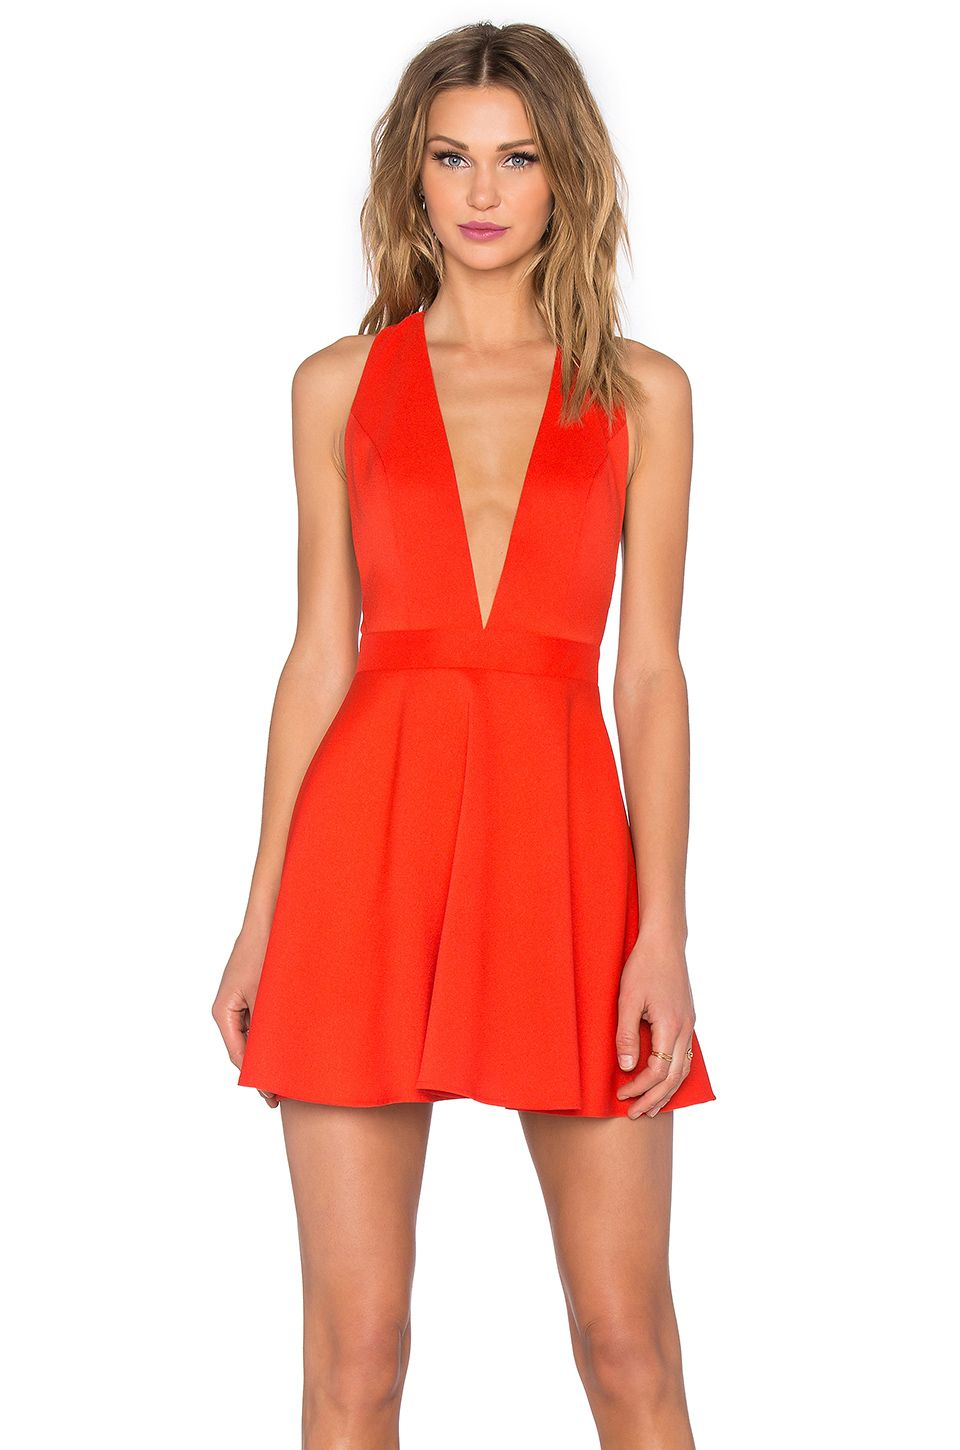 Dresses Revolve Designer Outfits Woman Dresses Fit Flare Dress